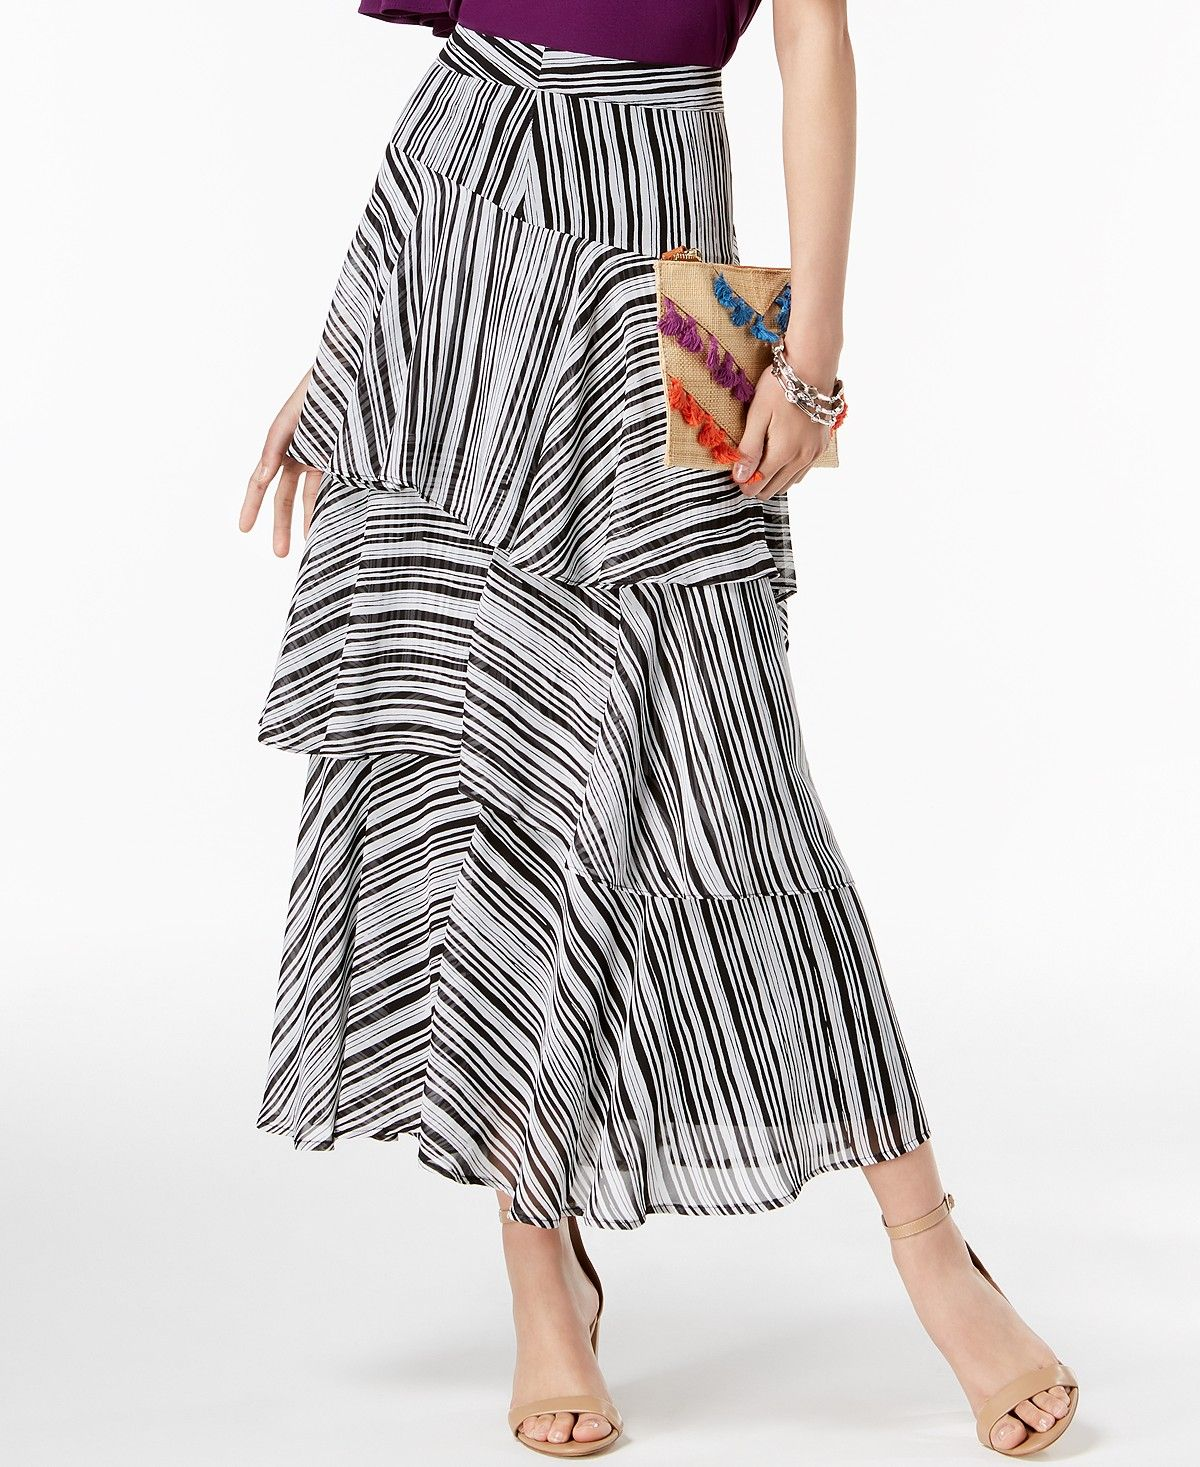 d36744614 I.N.C. Printed Tiered Skirt, Created for Macy's - Women - Macy's ...